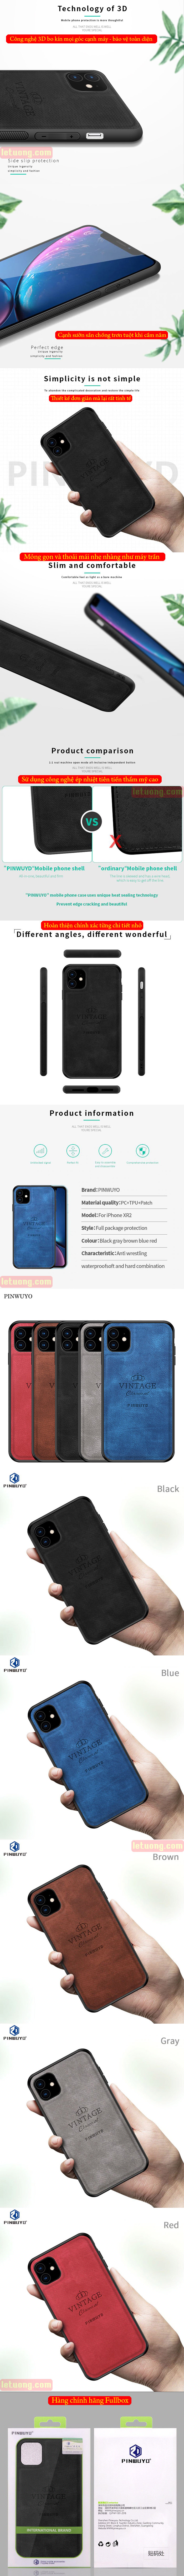 Ốp lưng iPhone 11 Pinwuyo Honorable Series lưng da PU 5